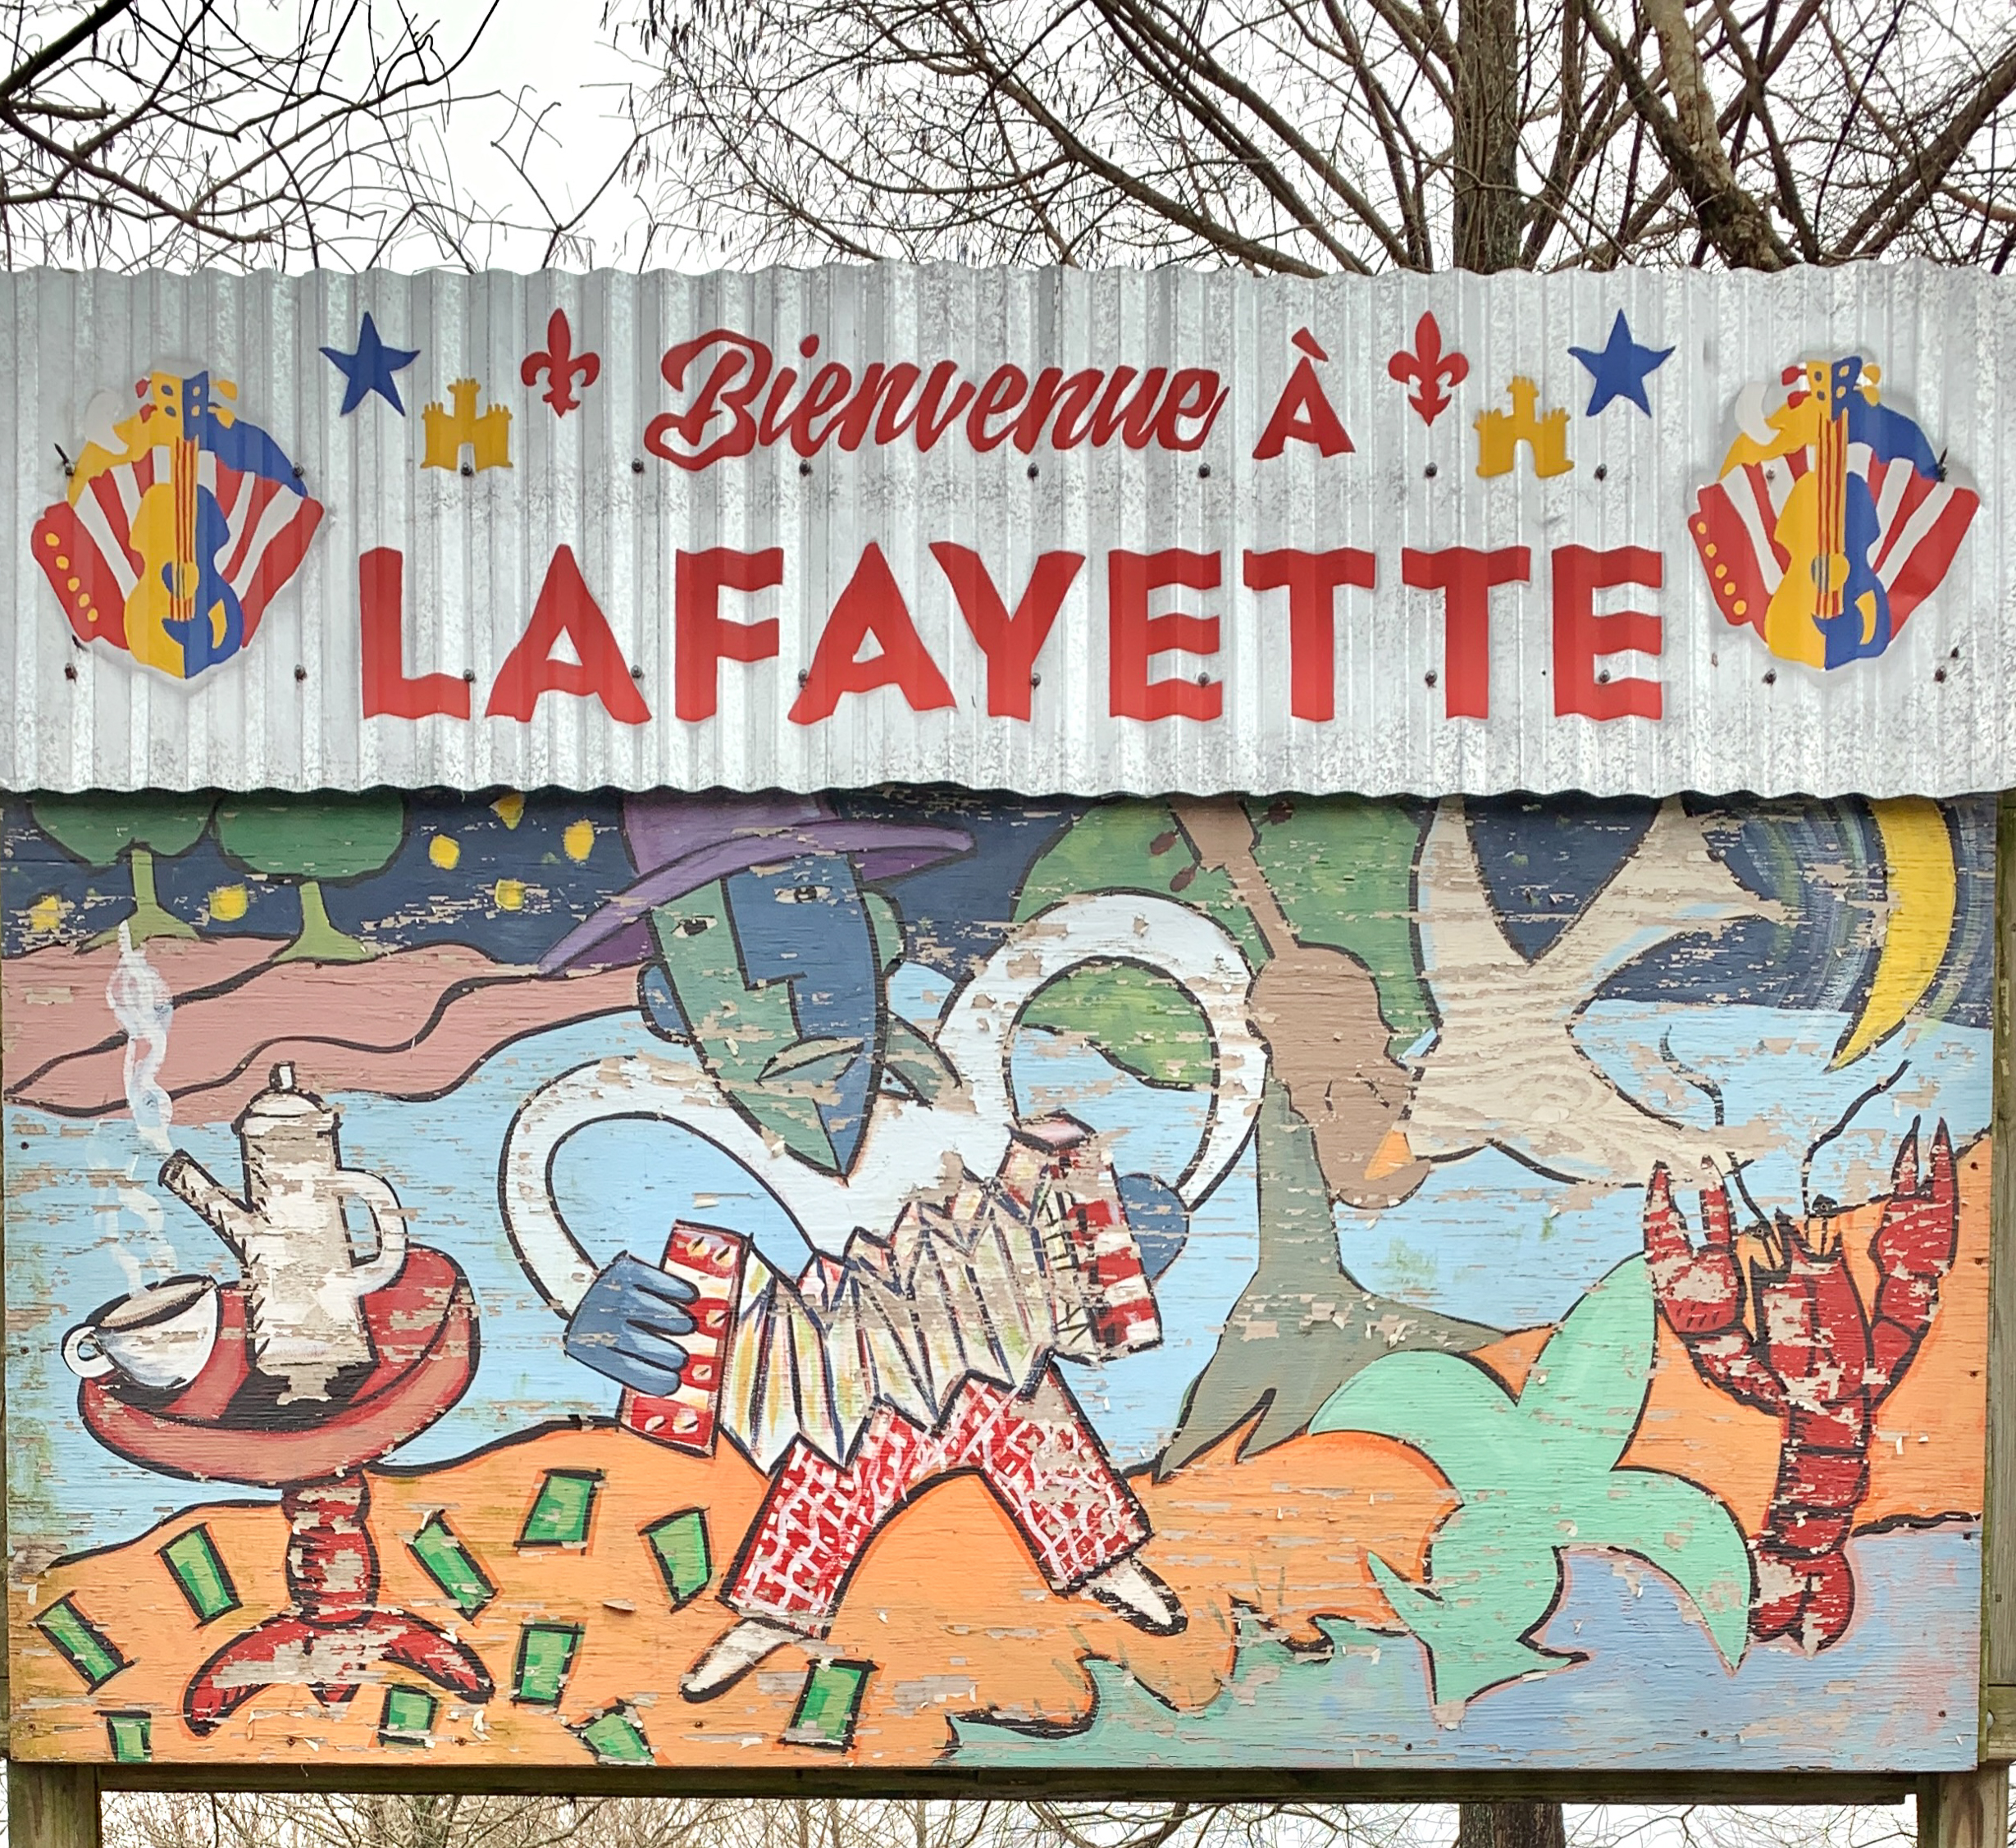 a welcome to Lafayette sign in French